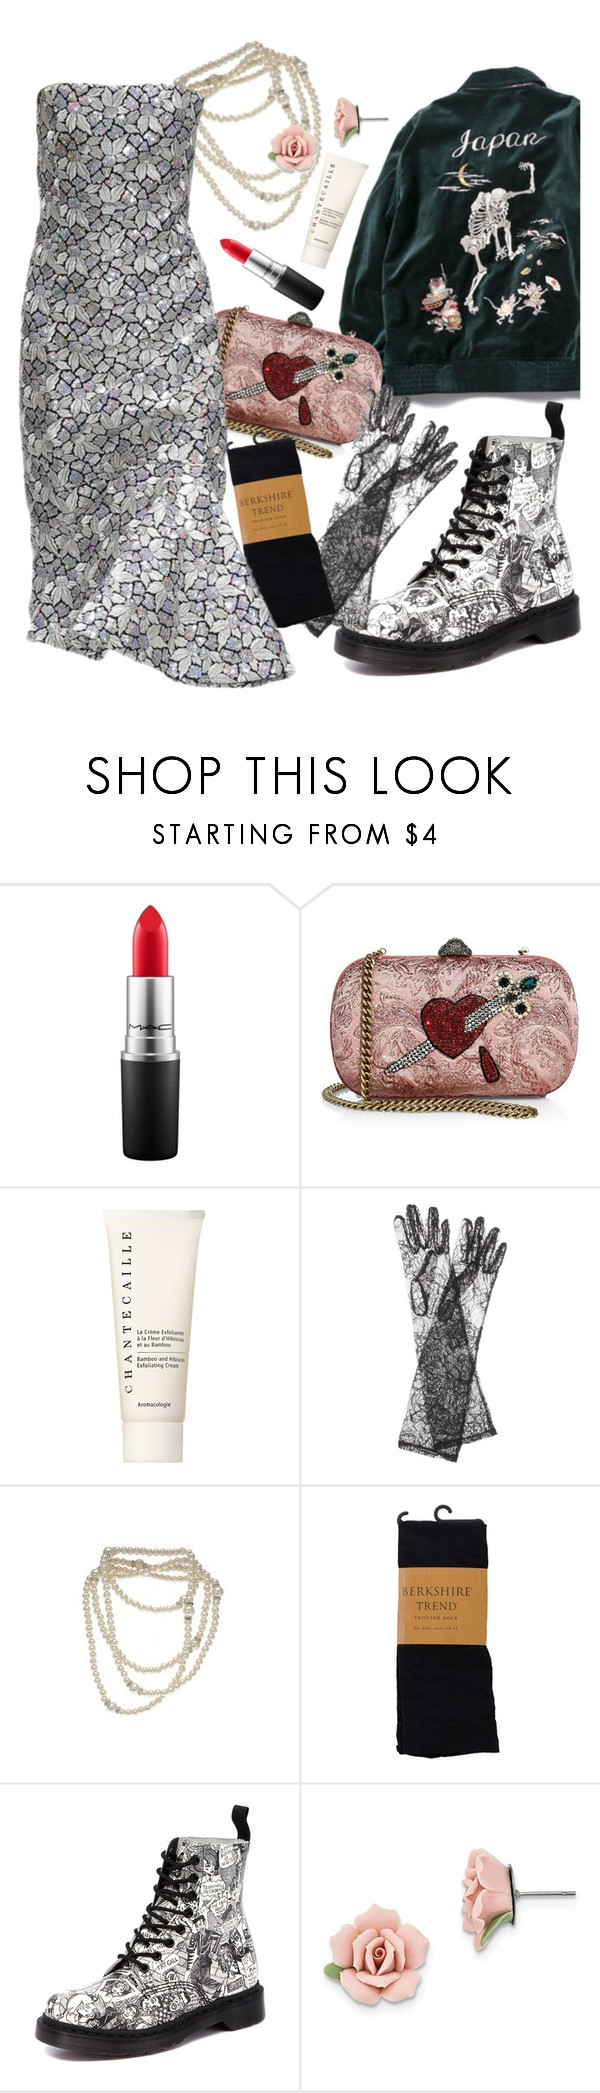 """""""D##$@!"""" by misstao ❤ liked on Polyvore featuring MAC Cosmetics, Gucci, Chantecaille, Dolce&Gabbana, Balenciaga, Dr. Martens and 1928"""